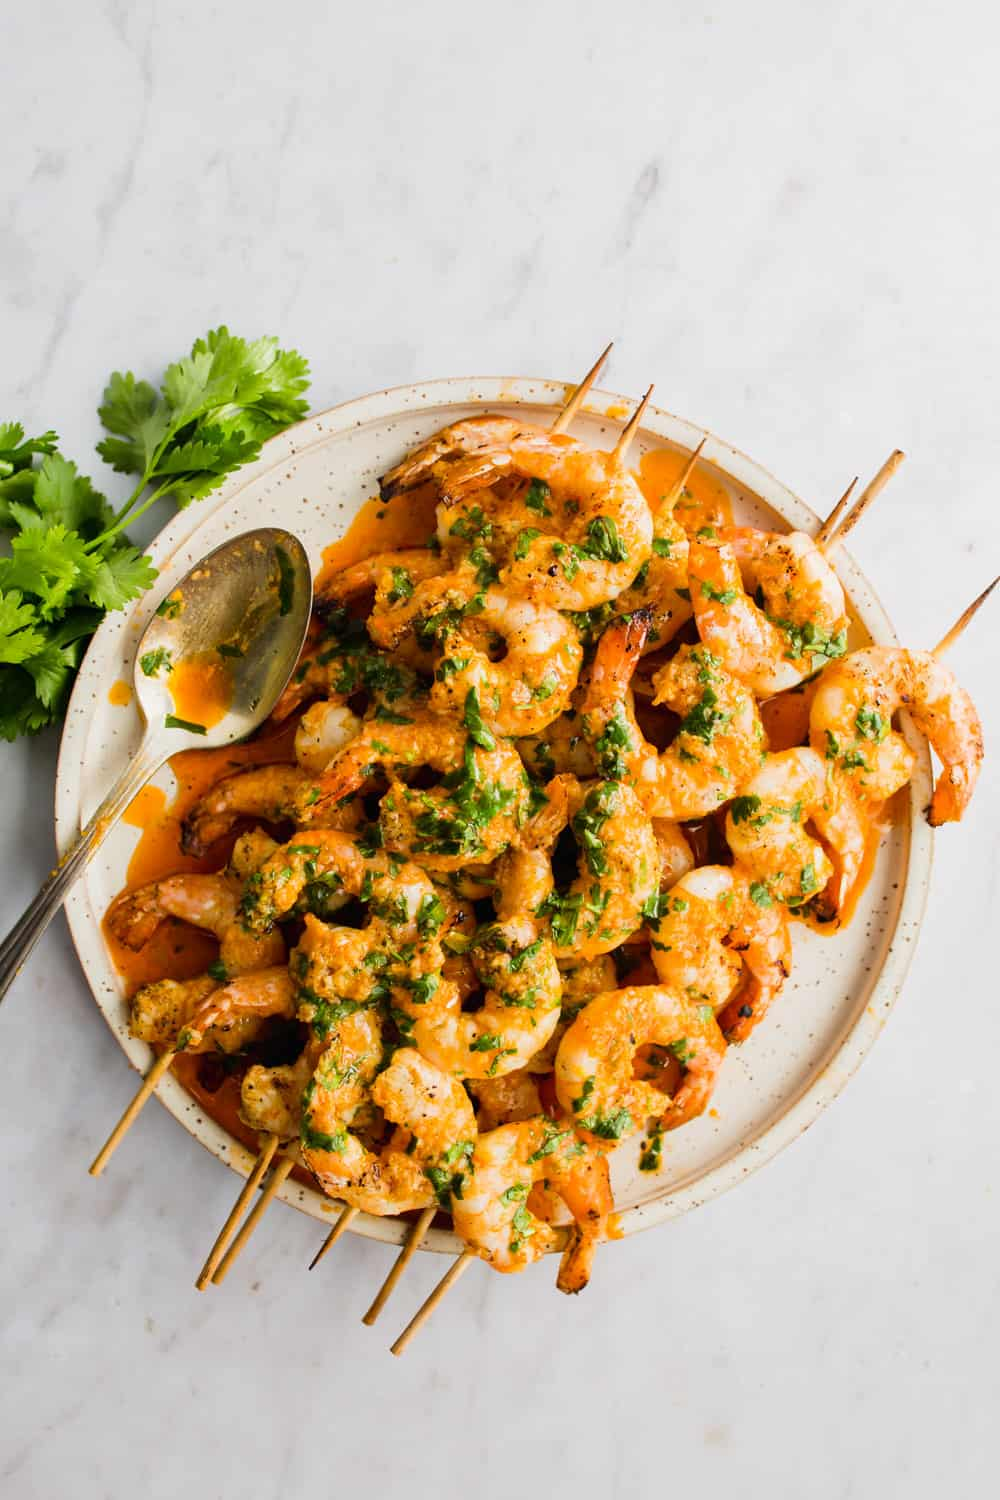 Overhead shot of orange grilled shrimp on skewers, stacked on a white plate